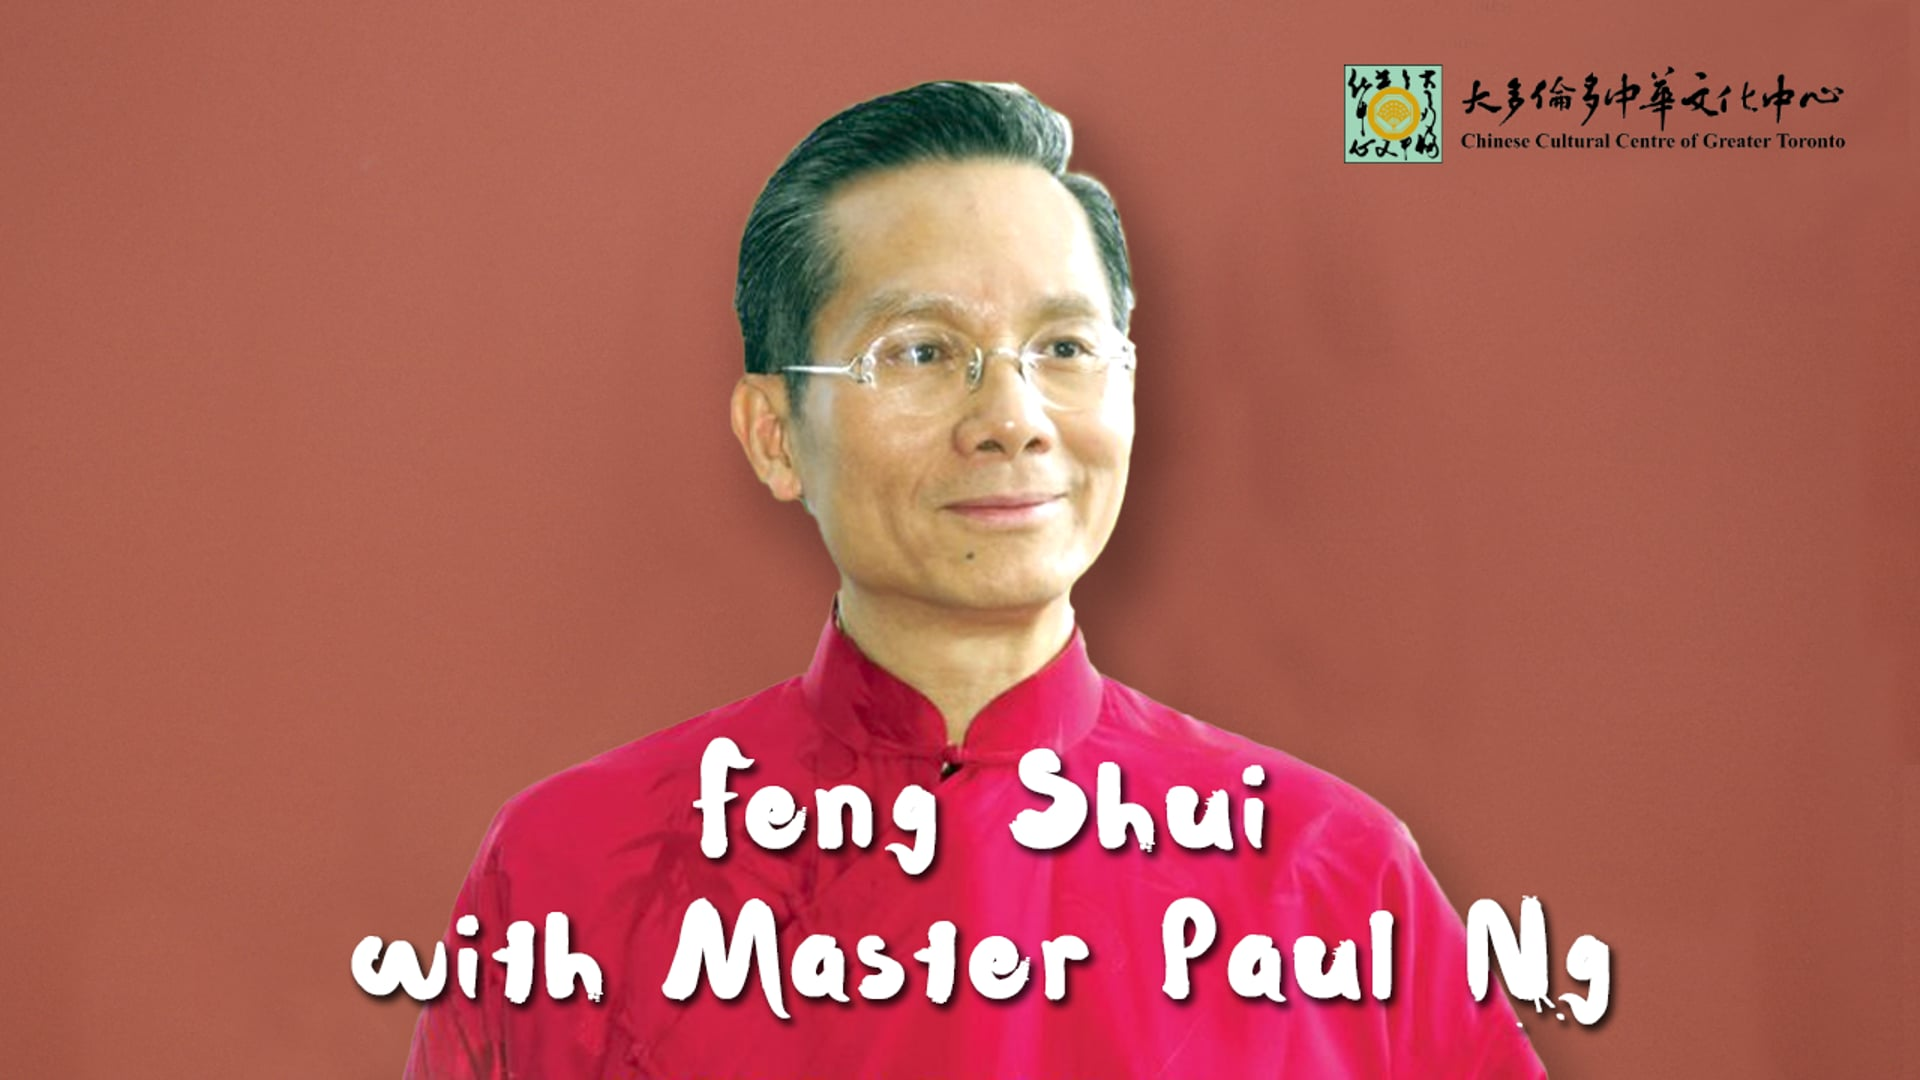 Feng Shui - Master Paul Ng | CCC Connect